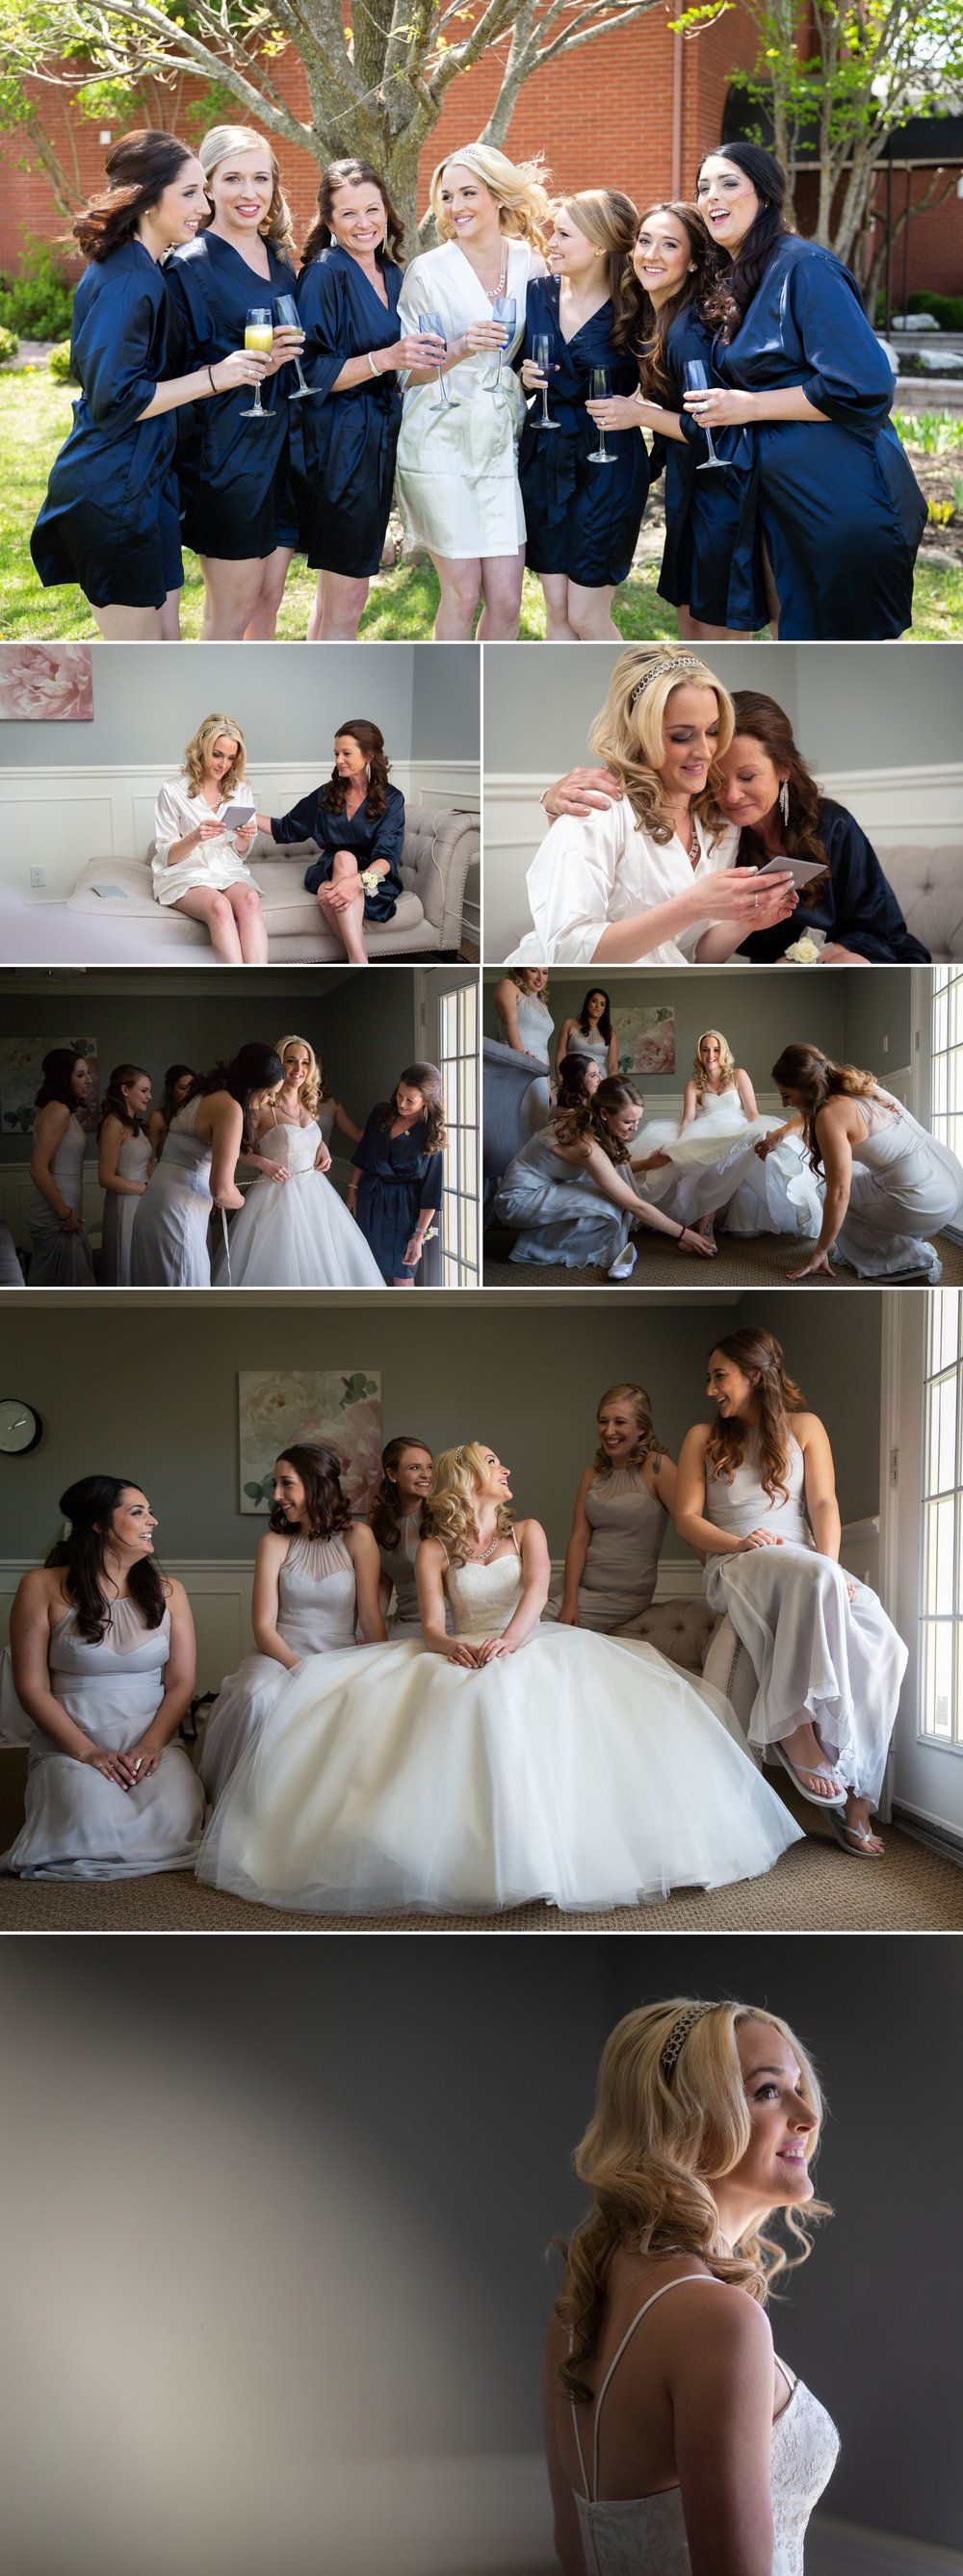 The bride with her bridesmaid and family getting ready at the Orchard View Guesthouse